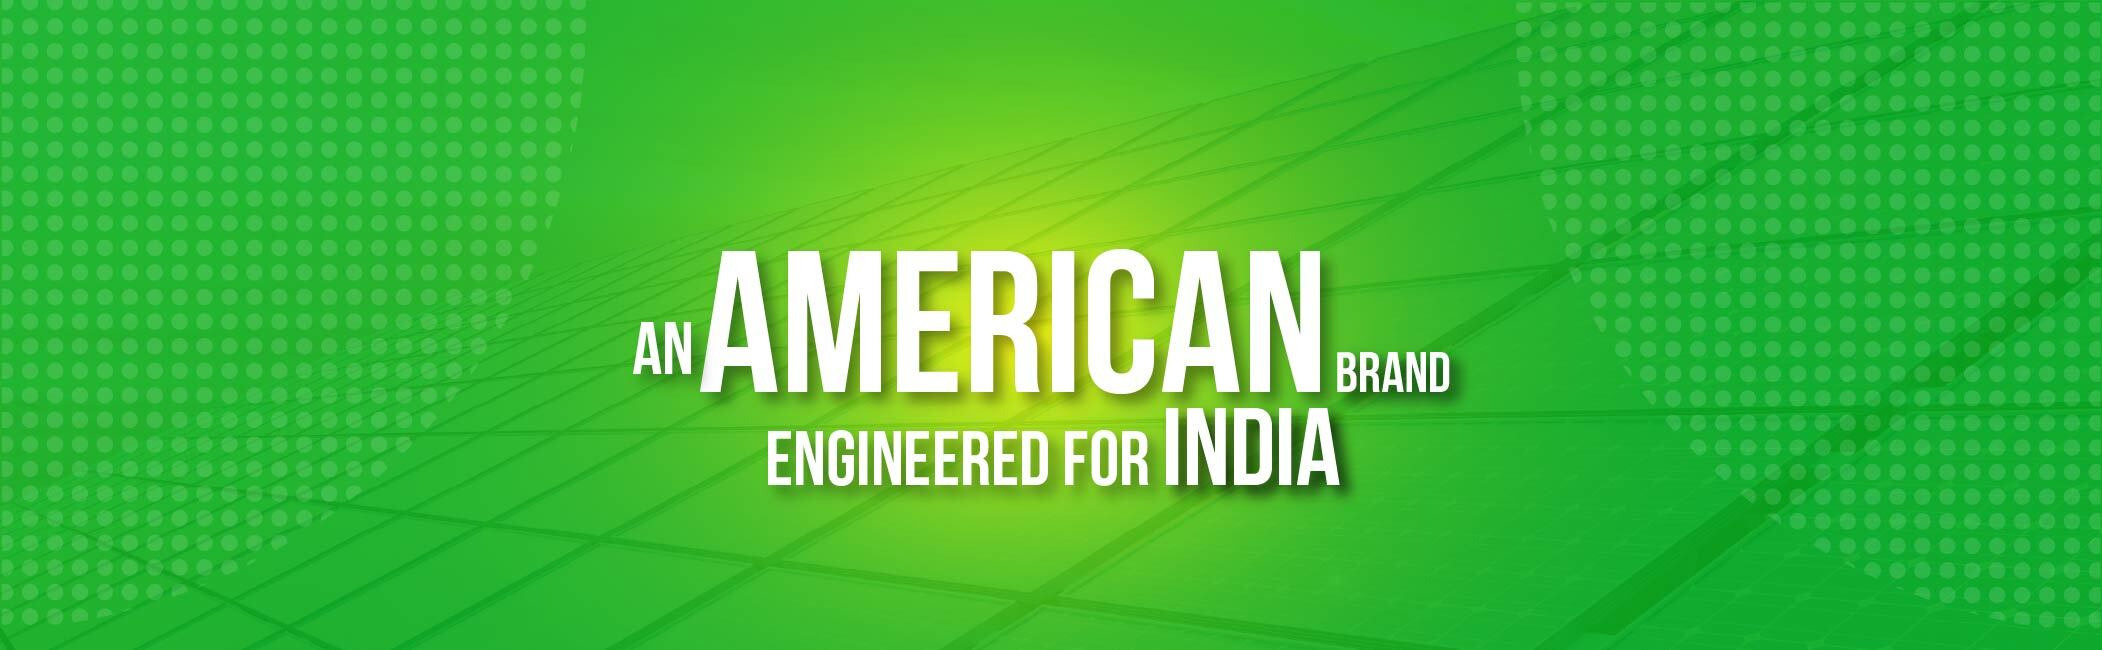 Inca - an American brand engineered for india